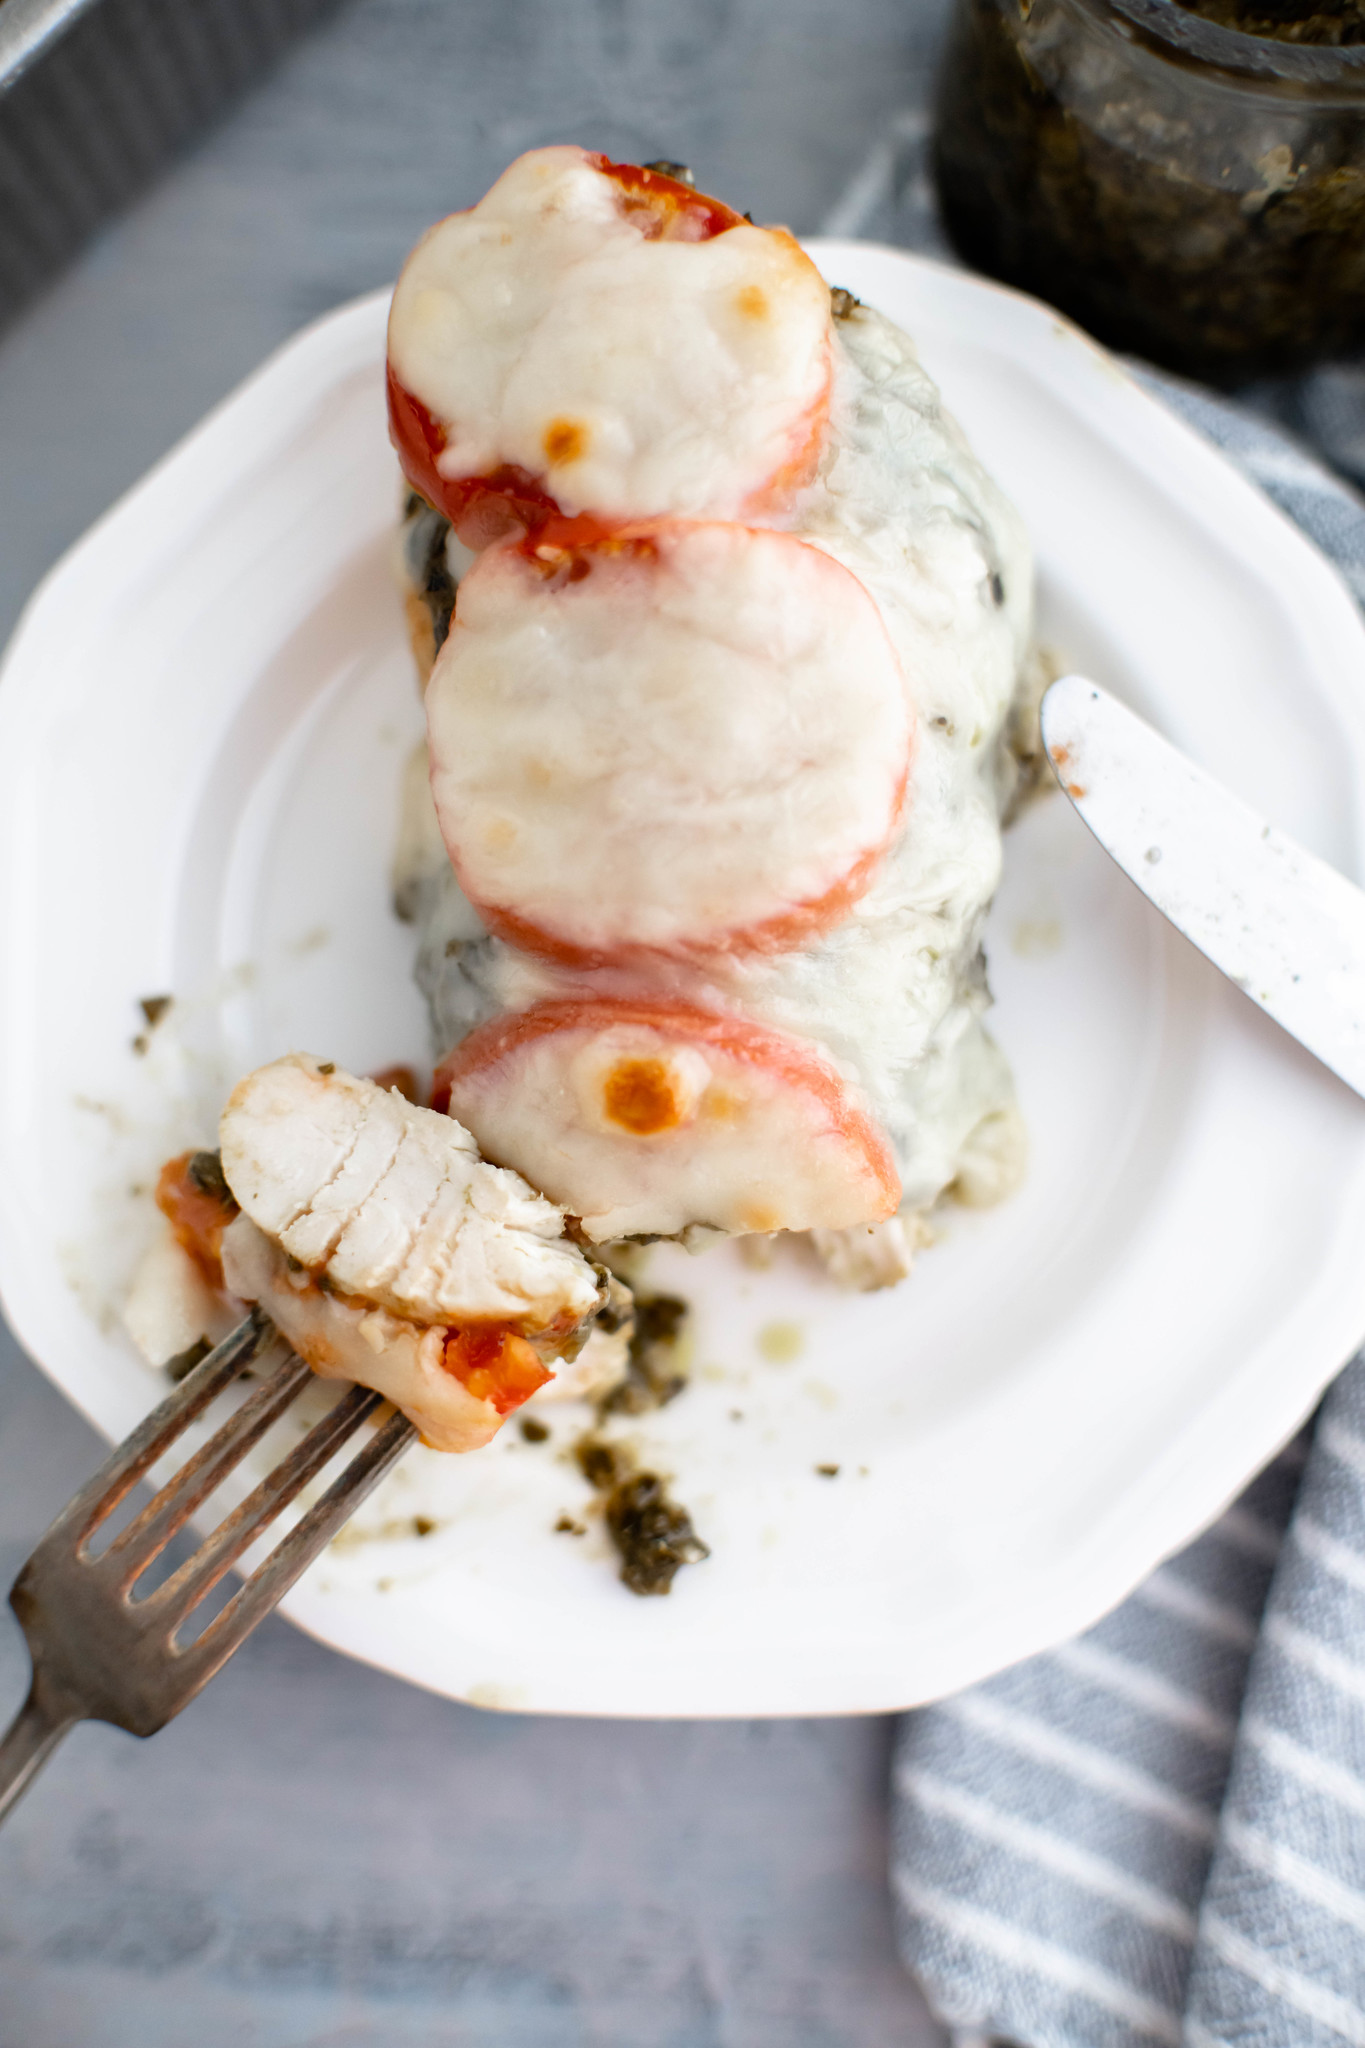 Pesto baked chicken on plate with piece cut off on fork and facing up to show interior.